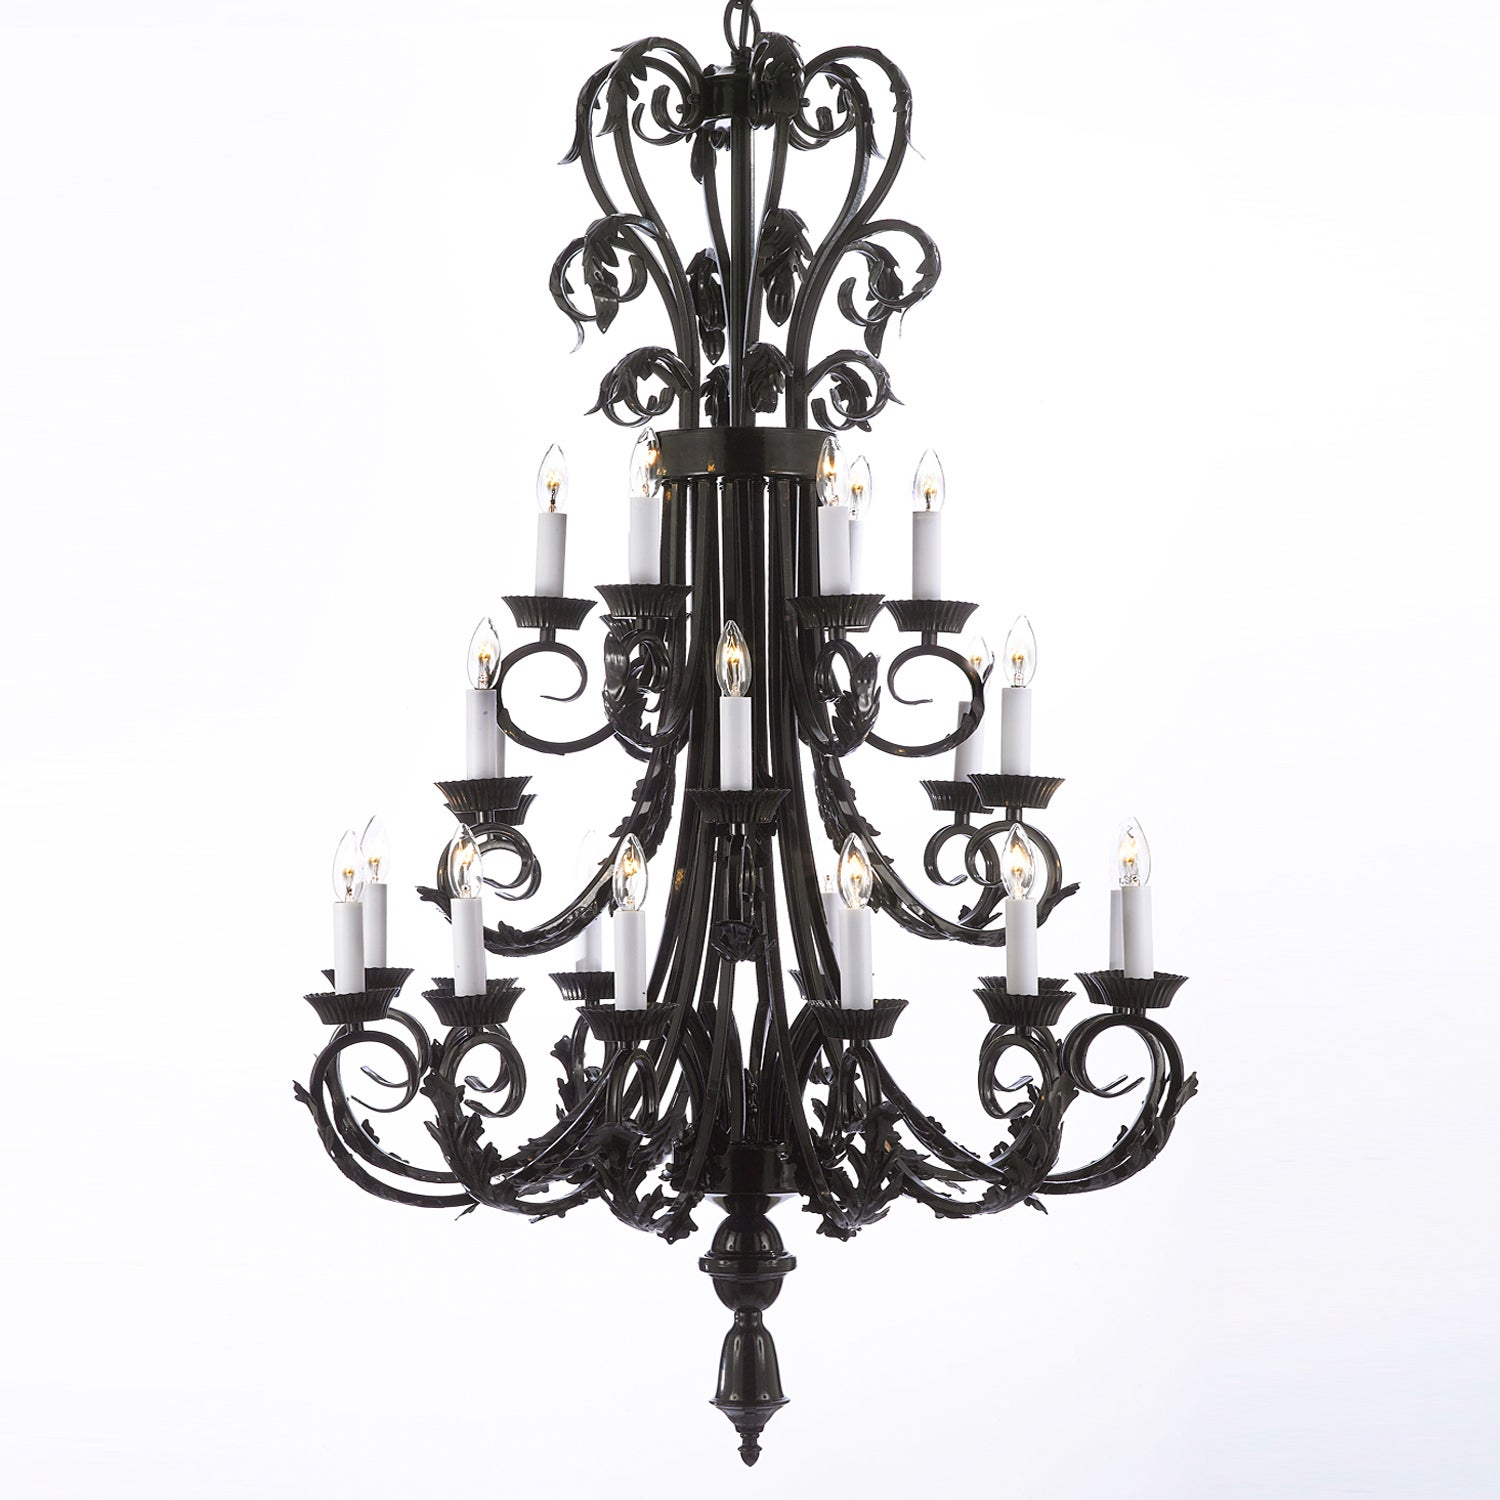 Shop gallery 24 light wrought iron foyer entryway chandelier free shipping today overstock 9290392